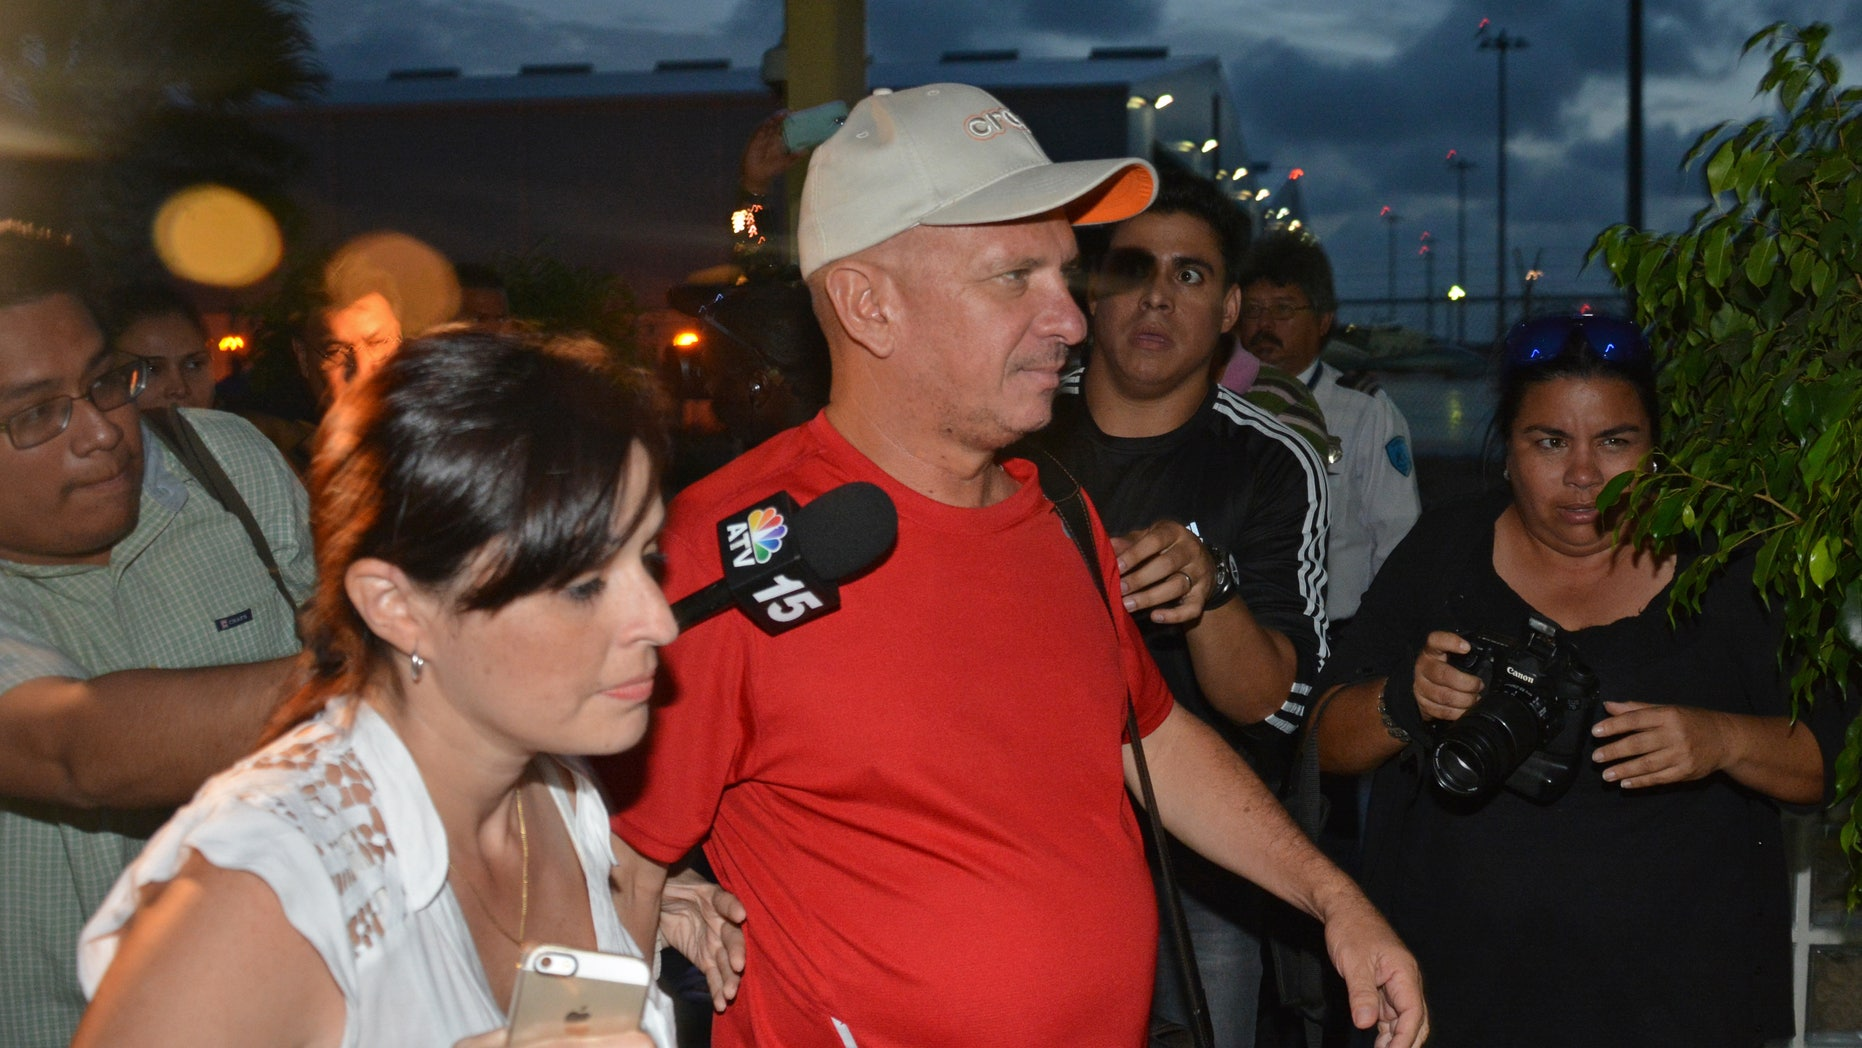 Hugo Carvajal arrives at the Queen Beatrix International Airport in Oranjestad, Aruba,  Sunday July 27, 2014.